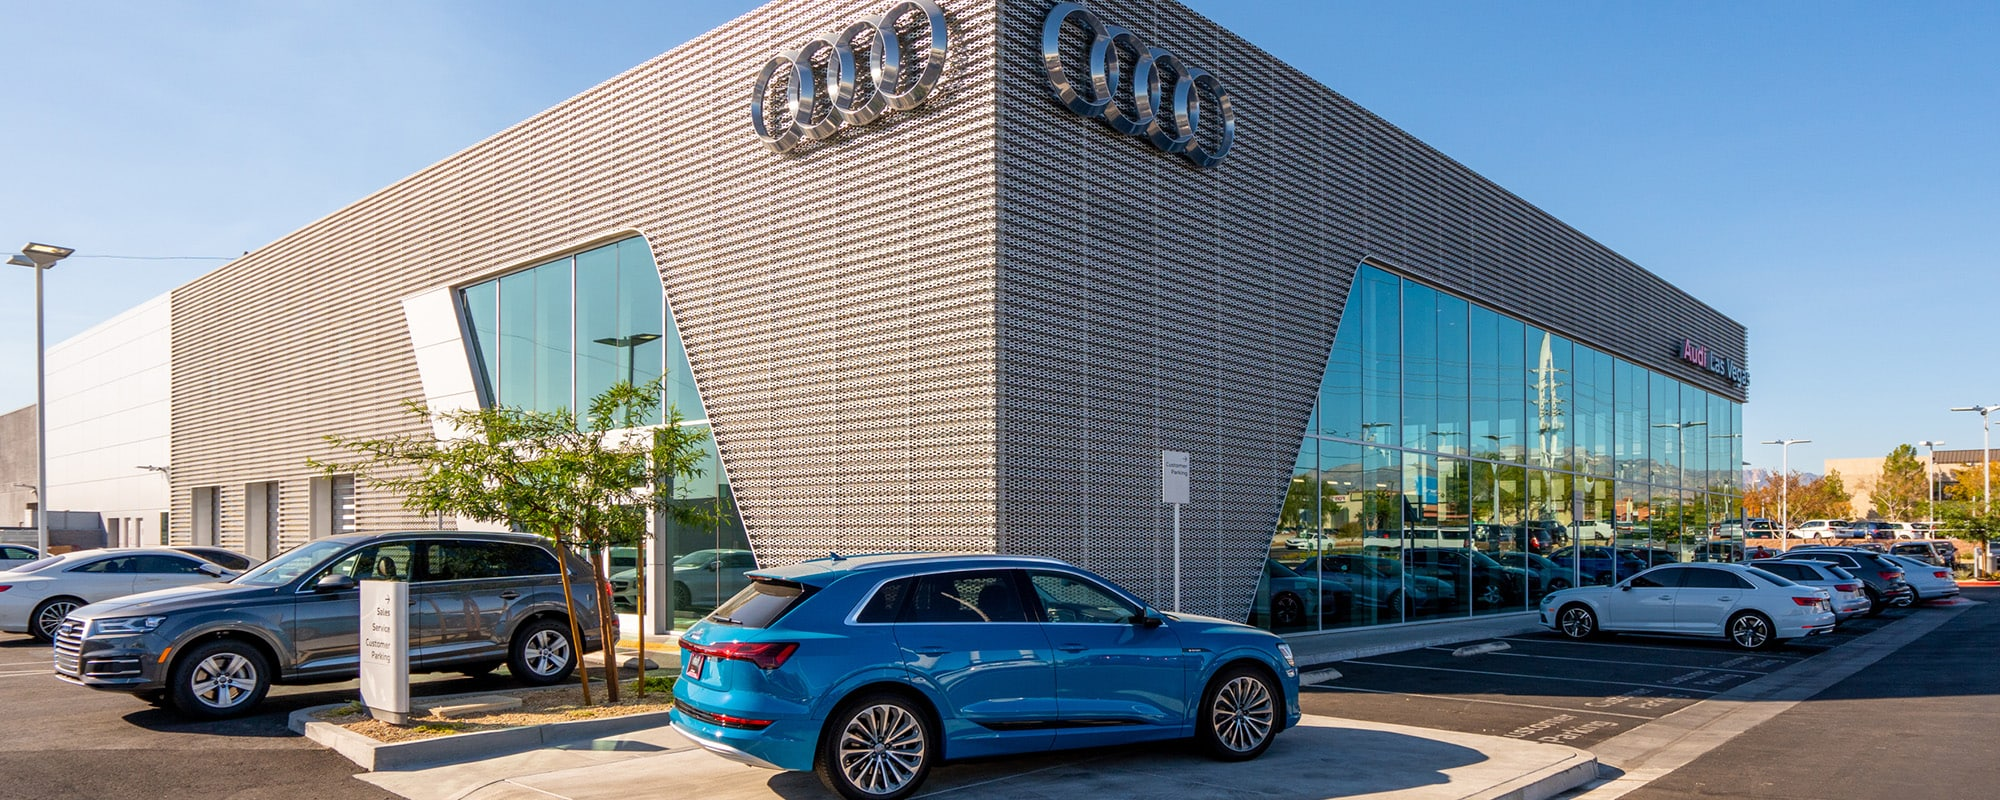 Outside view of Audi Las Vegas